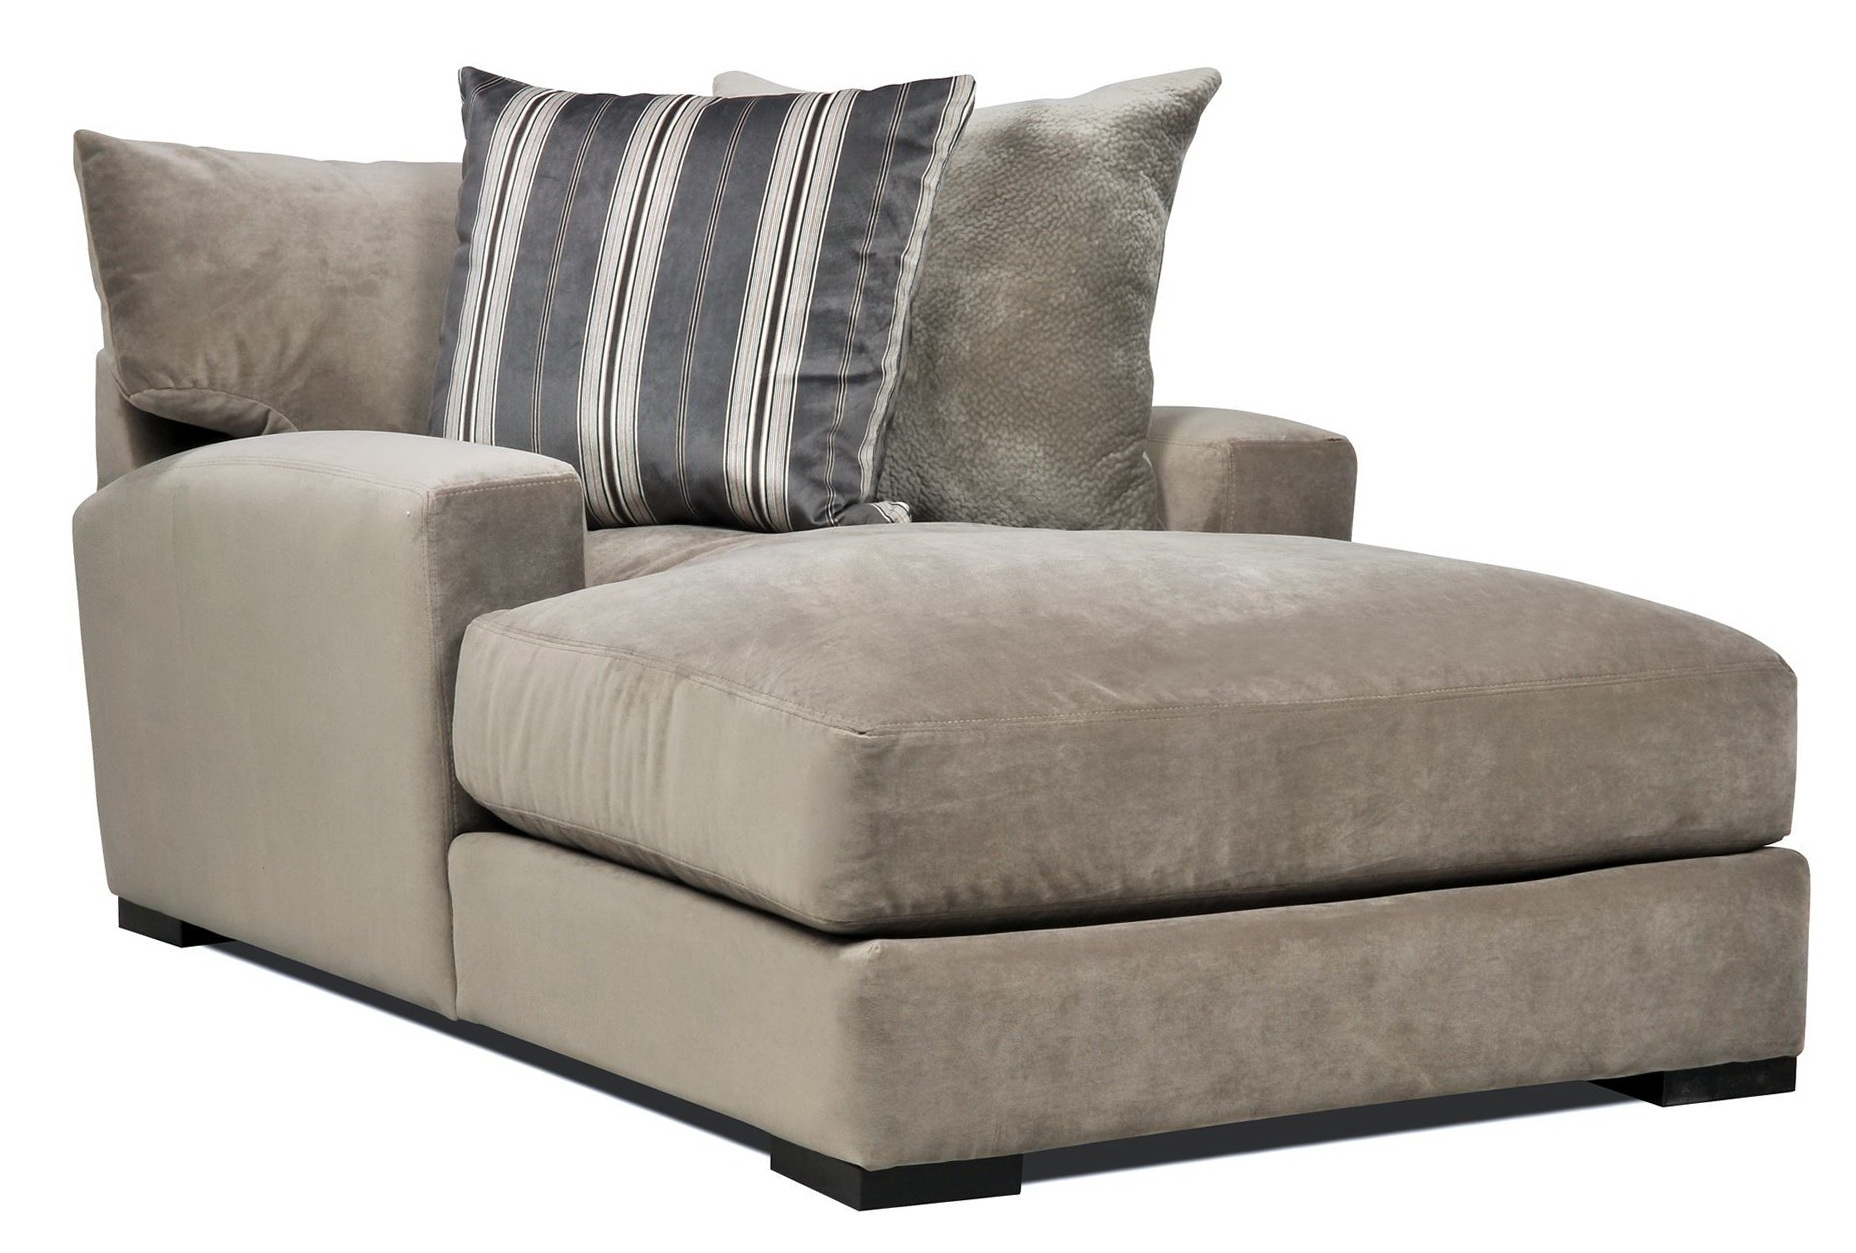 Favorite Oversized Chaise Lounges Throughout Double Wide Chaise Lounge Indoor With 2 Cushions (View 5 of 15)